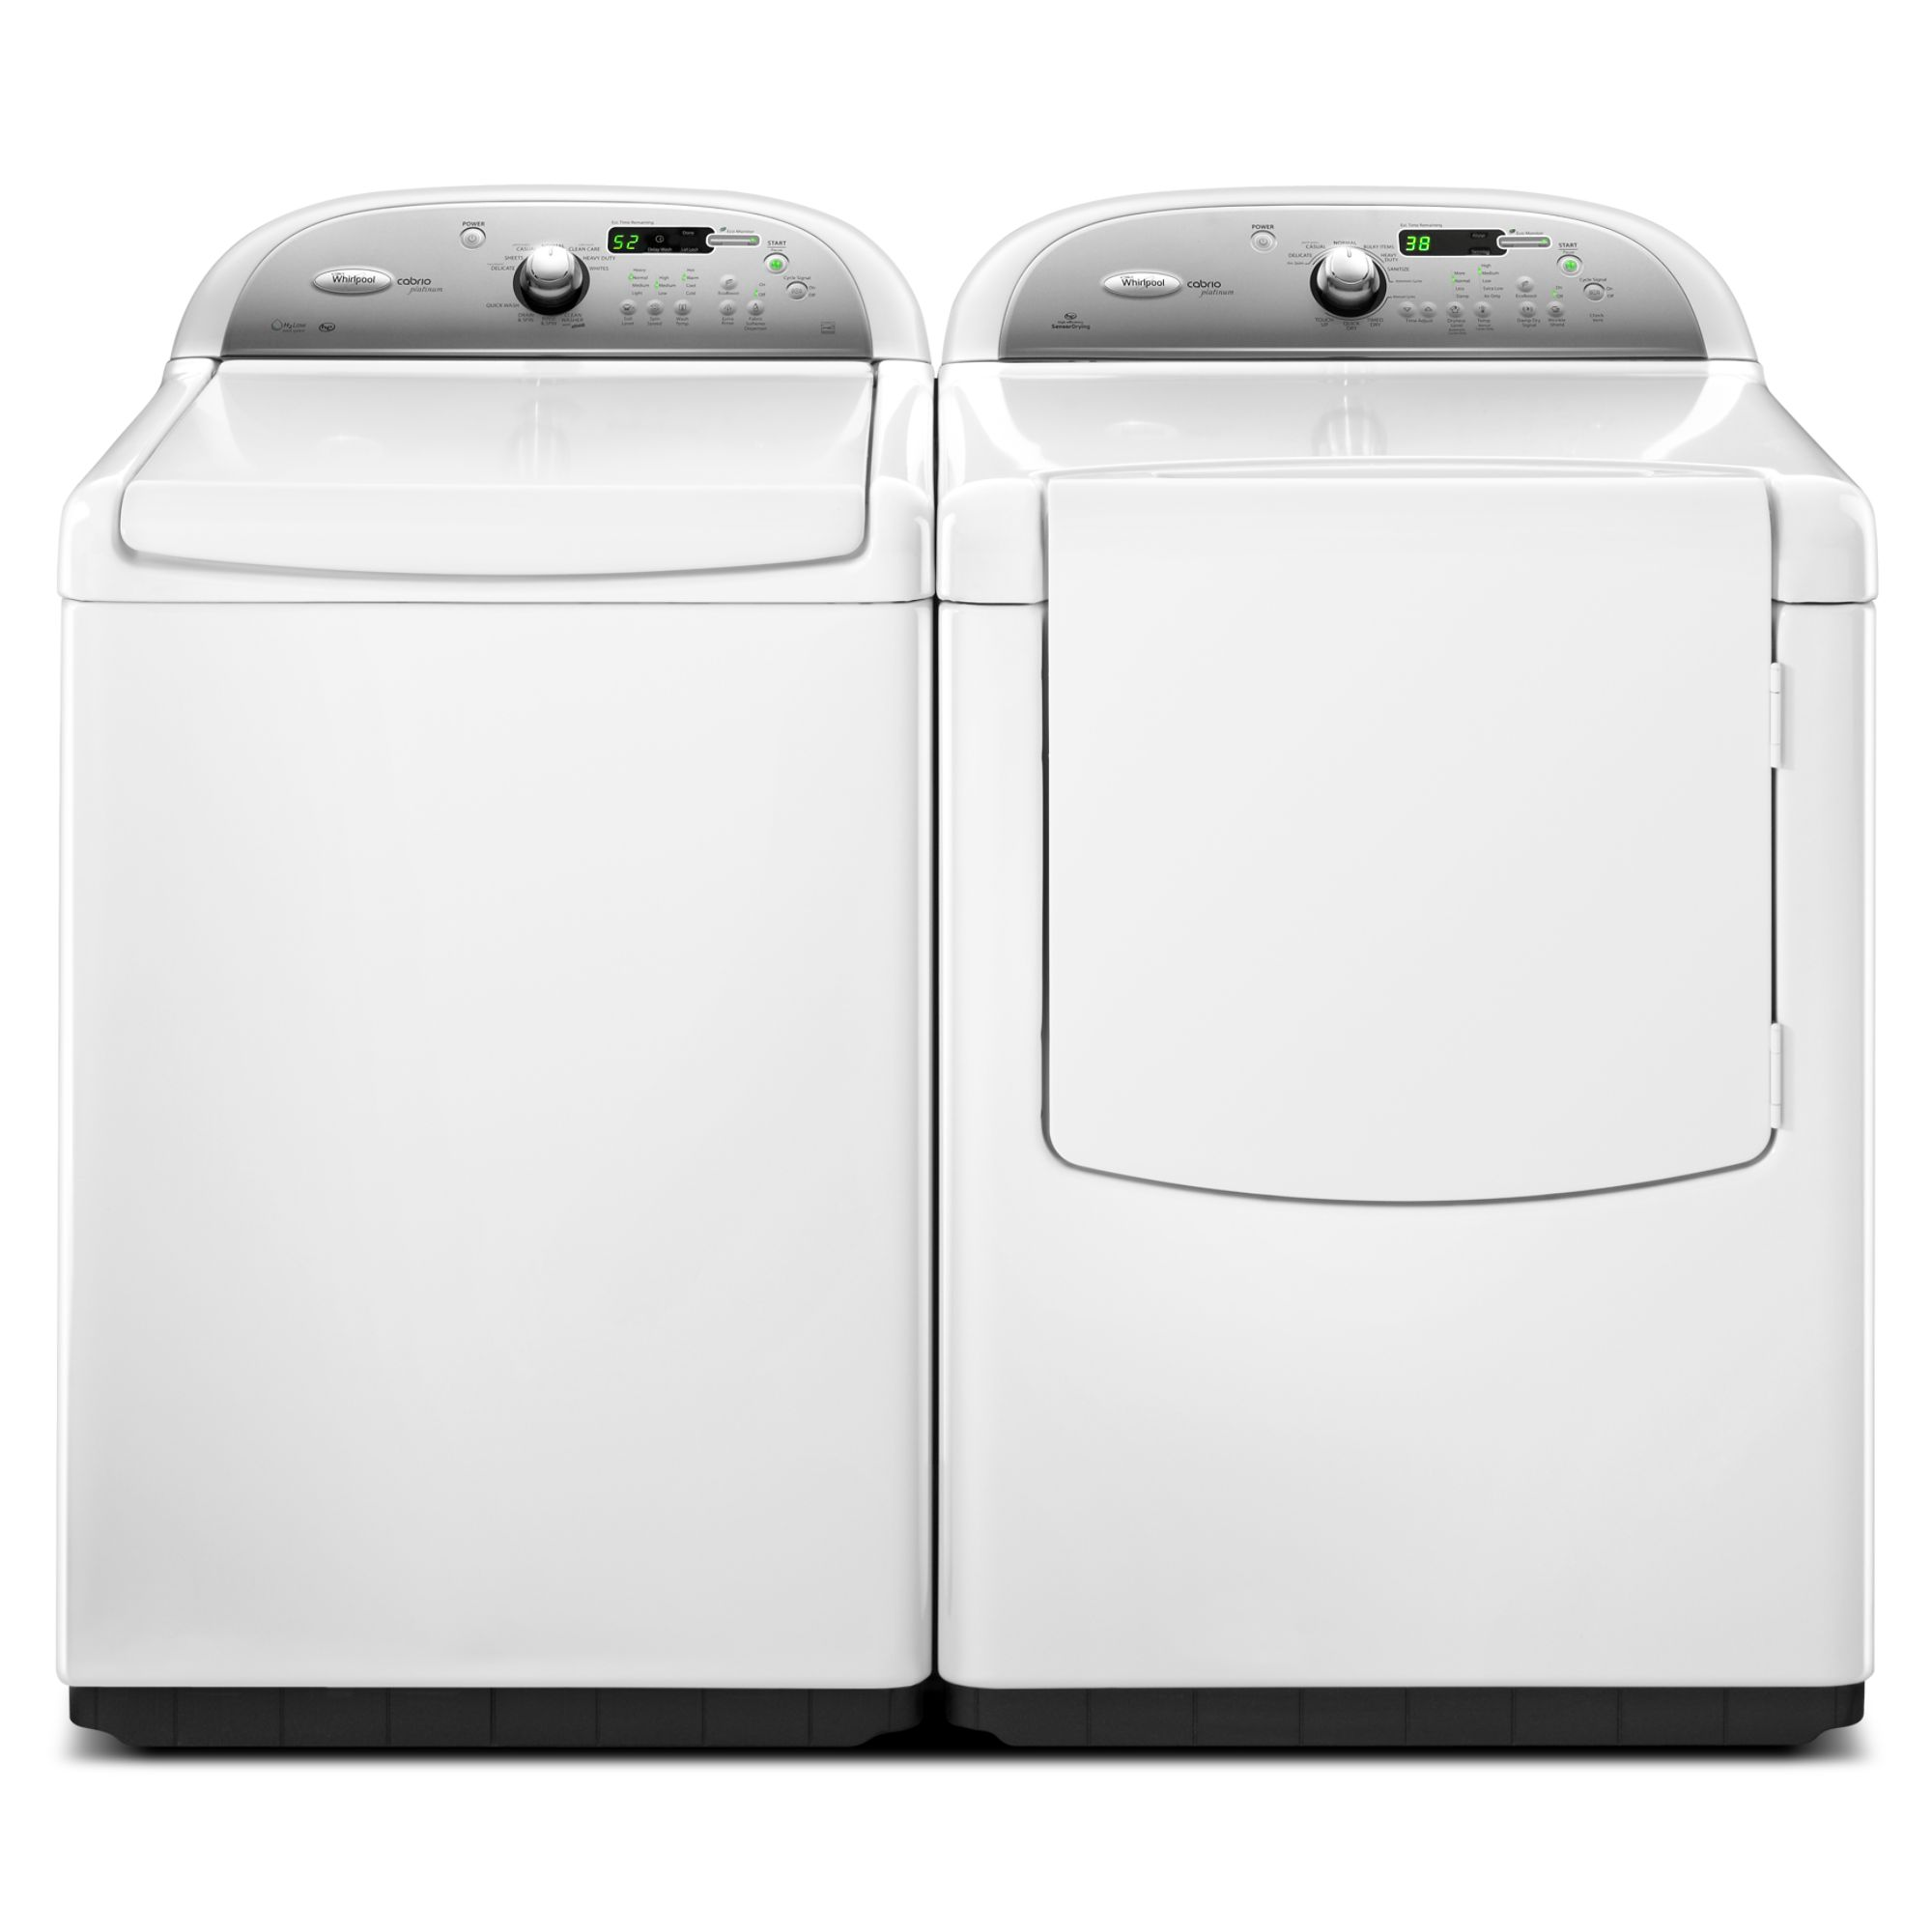 Whirlpool 7.6 cu. ft. Gas Dryer - White